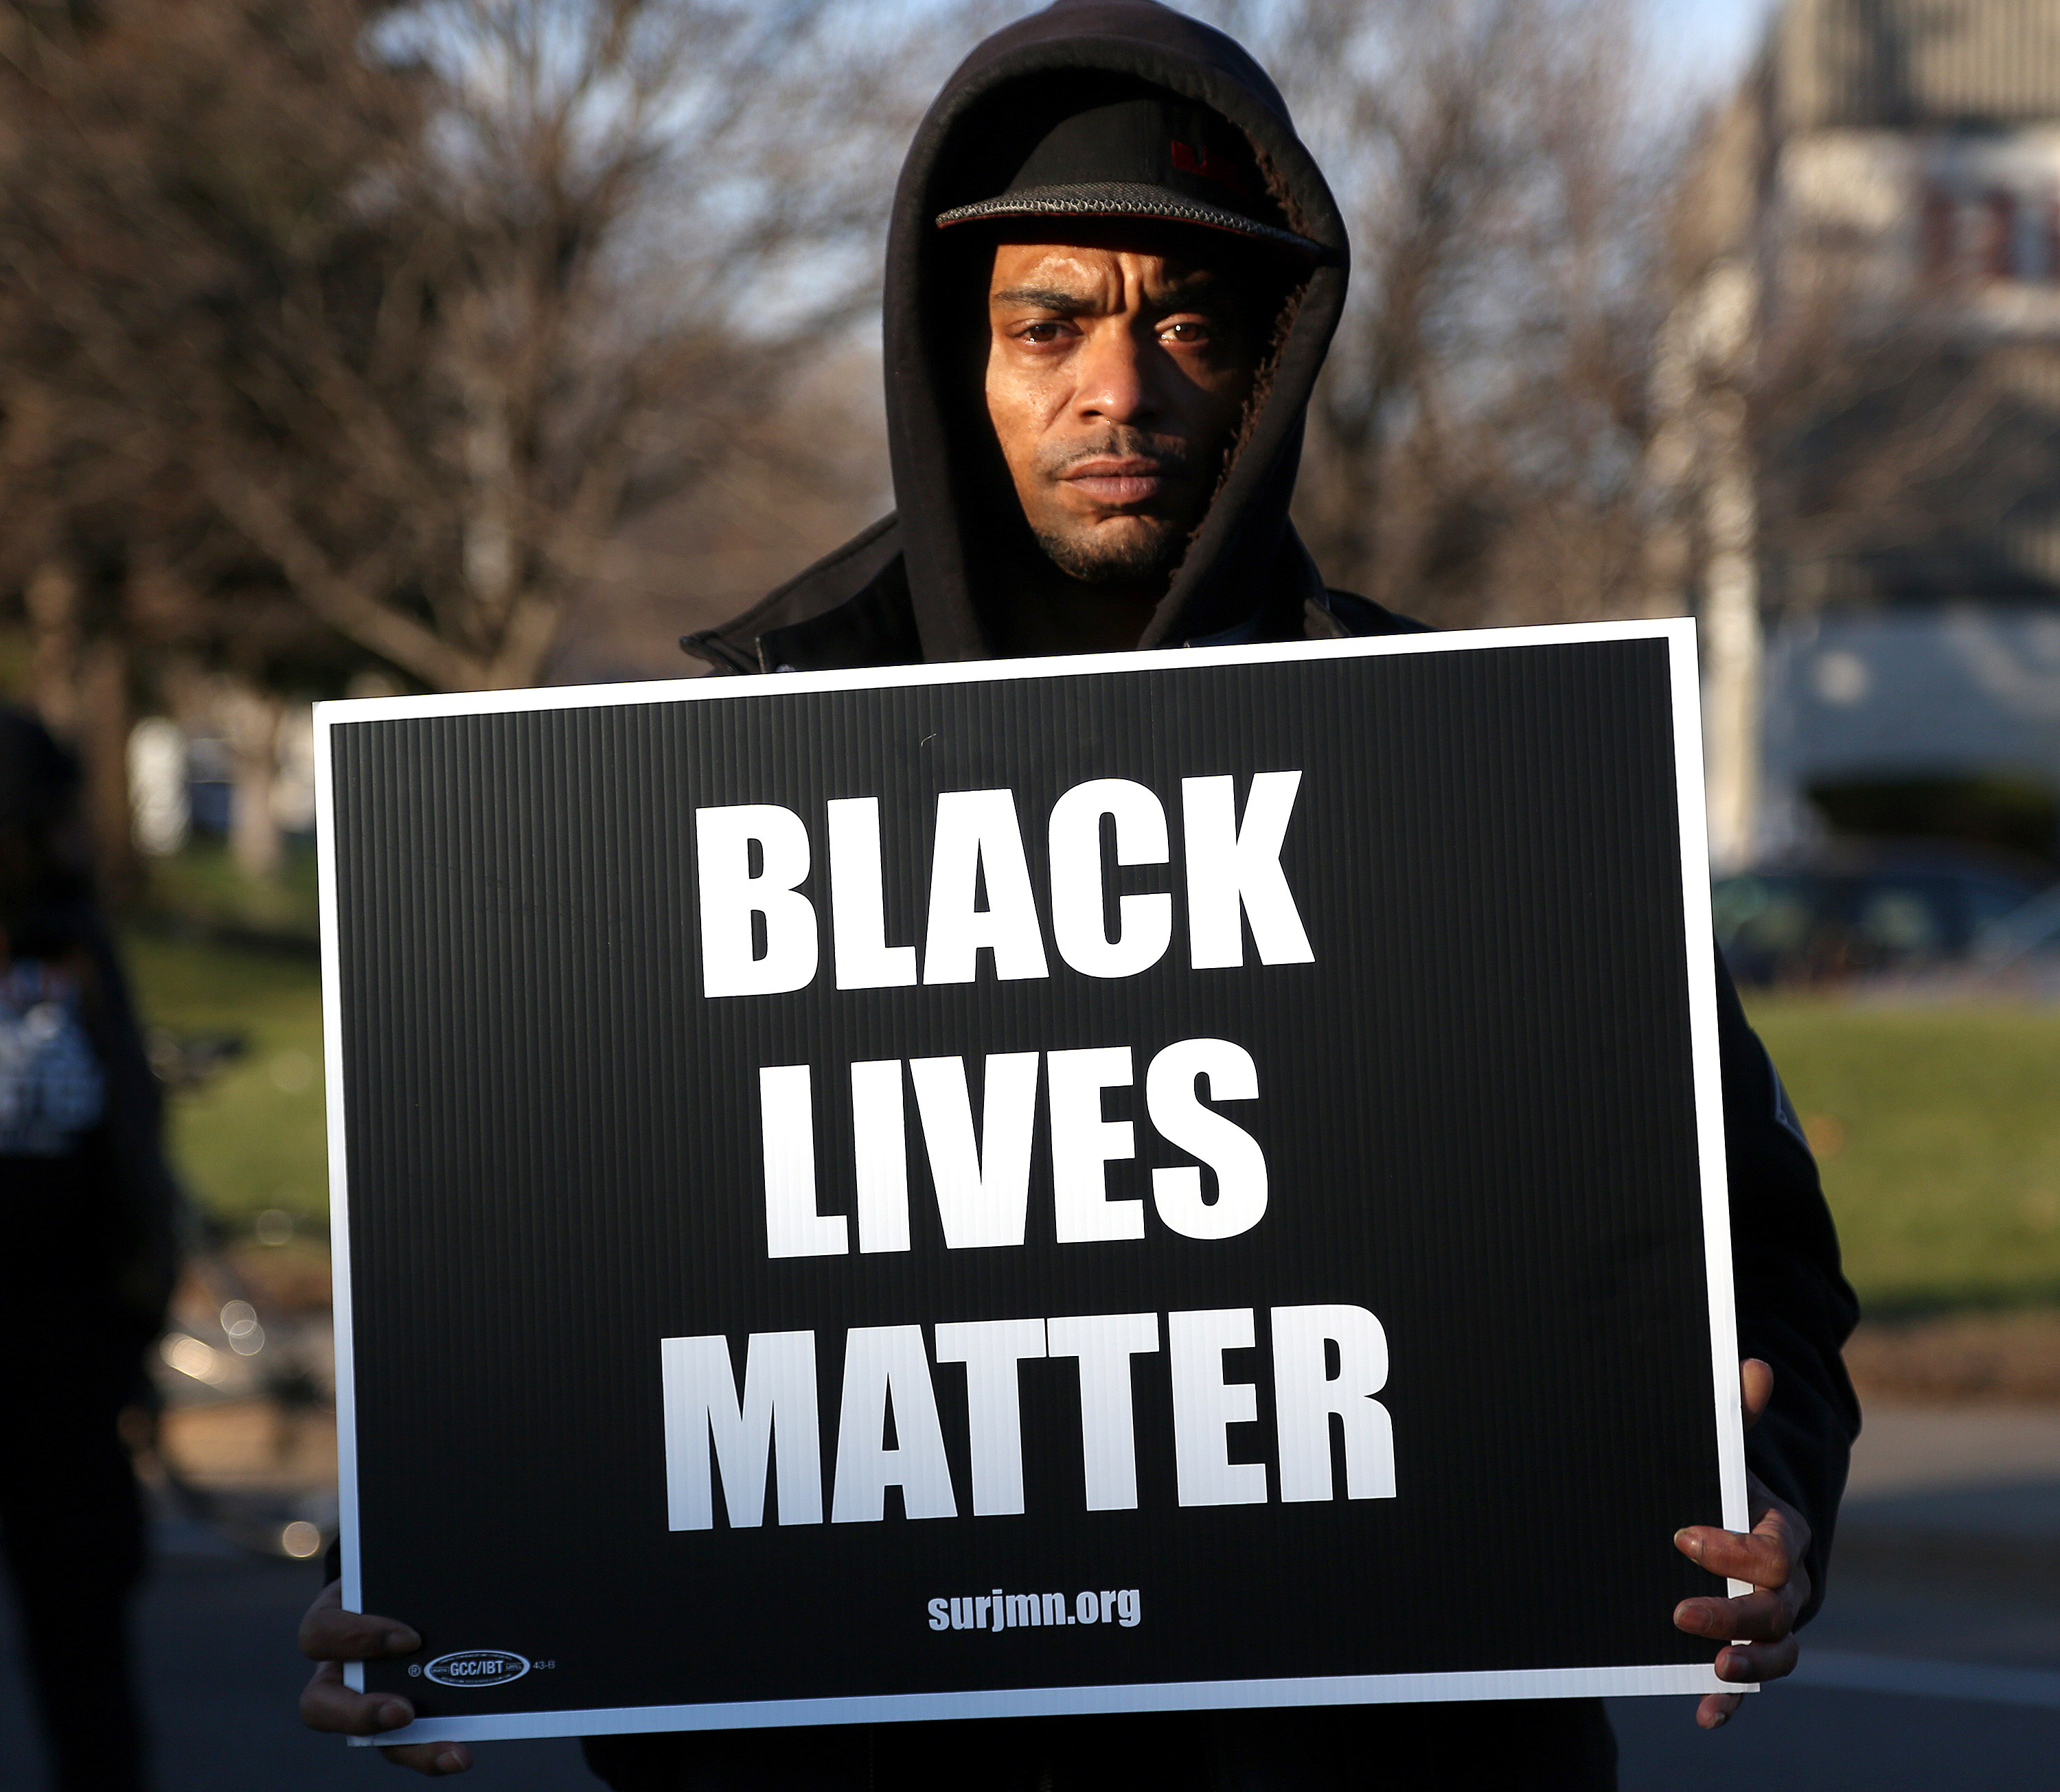 A community member held up his sign in front of the Fourth Precinct before heading down to the federal court house. ] (KYNDELL HARKNESS/STAR TRIBUNE) kyndell.harkness@startribune.com Protesters at the Minneapolis Fourth Precinct in Minneapolis Min., Saturday November 24, 2015. ORG XMIT: MIN1511241940380214